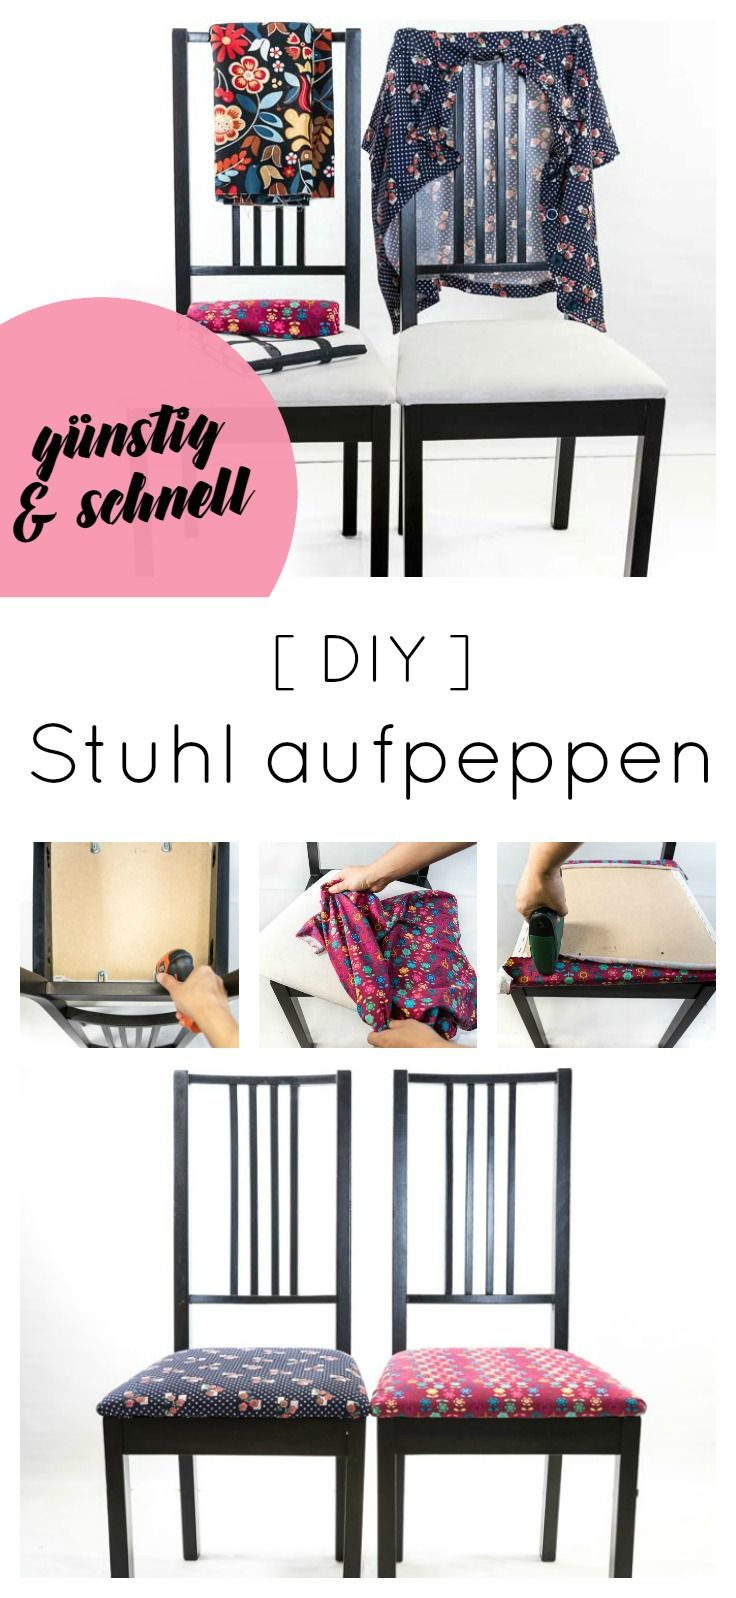 ikea hack stuhl mit stoff beziehen german blogger diy pinterest m bel st hle und ikea. Black Bedroom Furniture Sets. Home Design Ideas